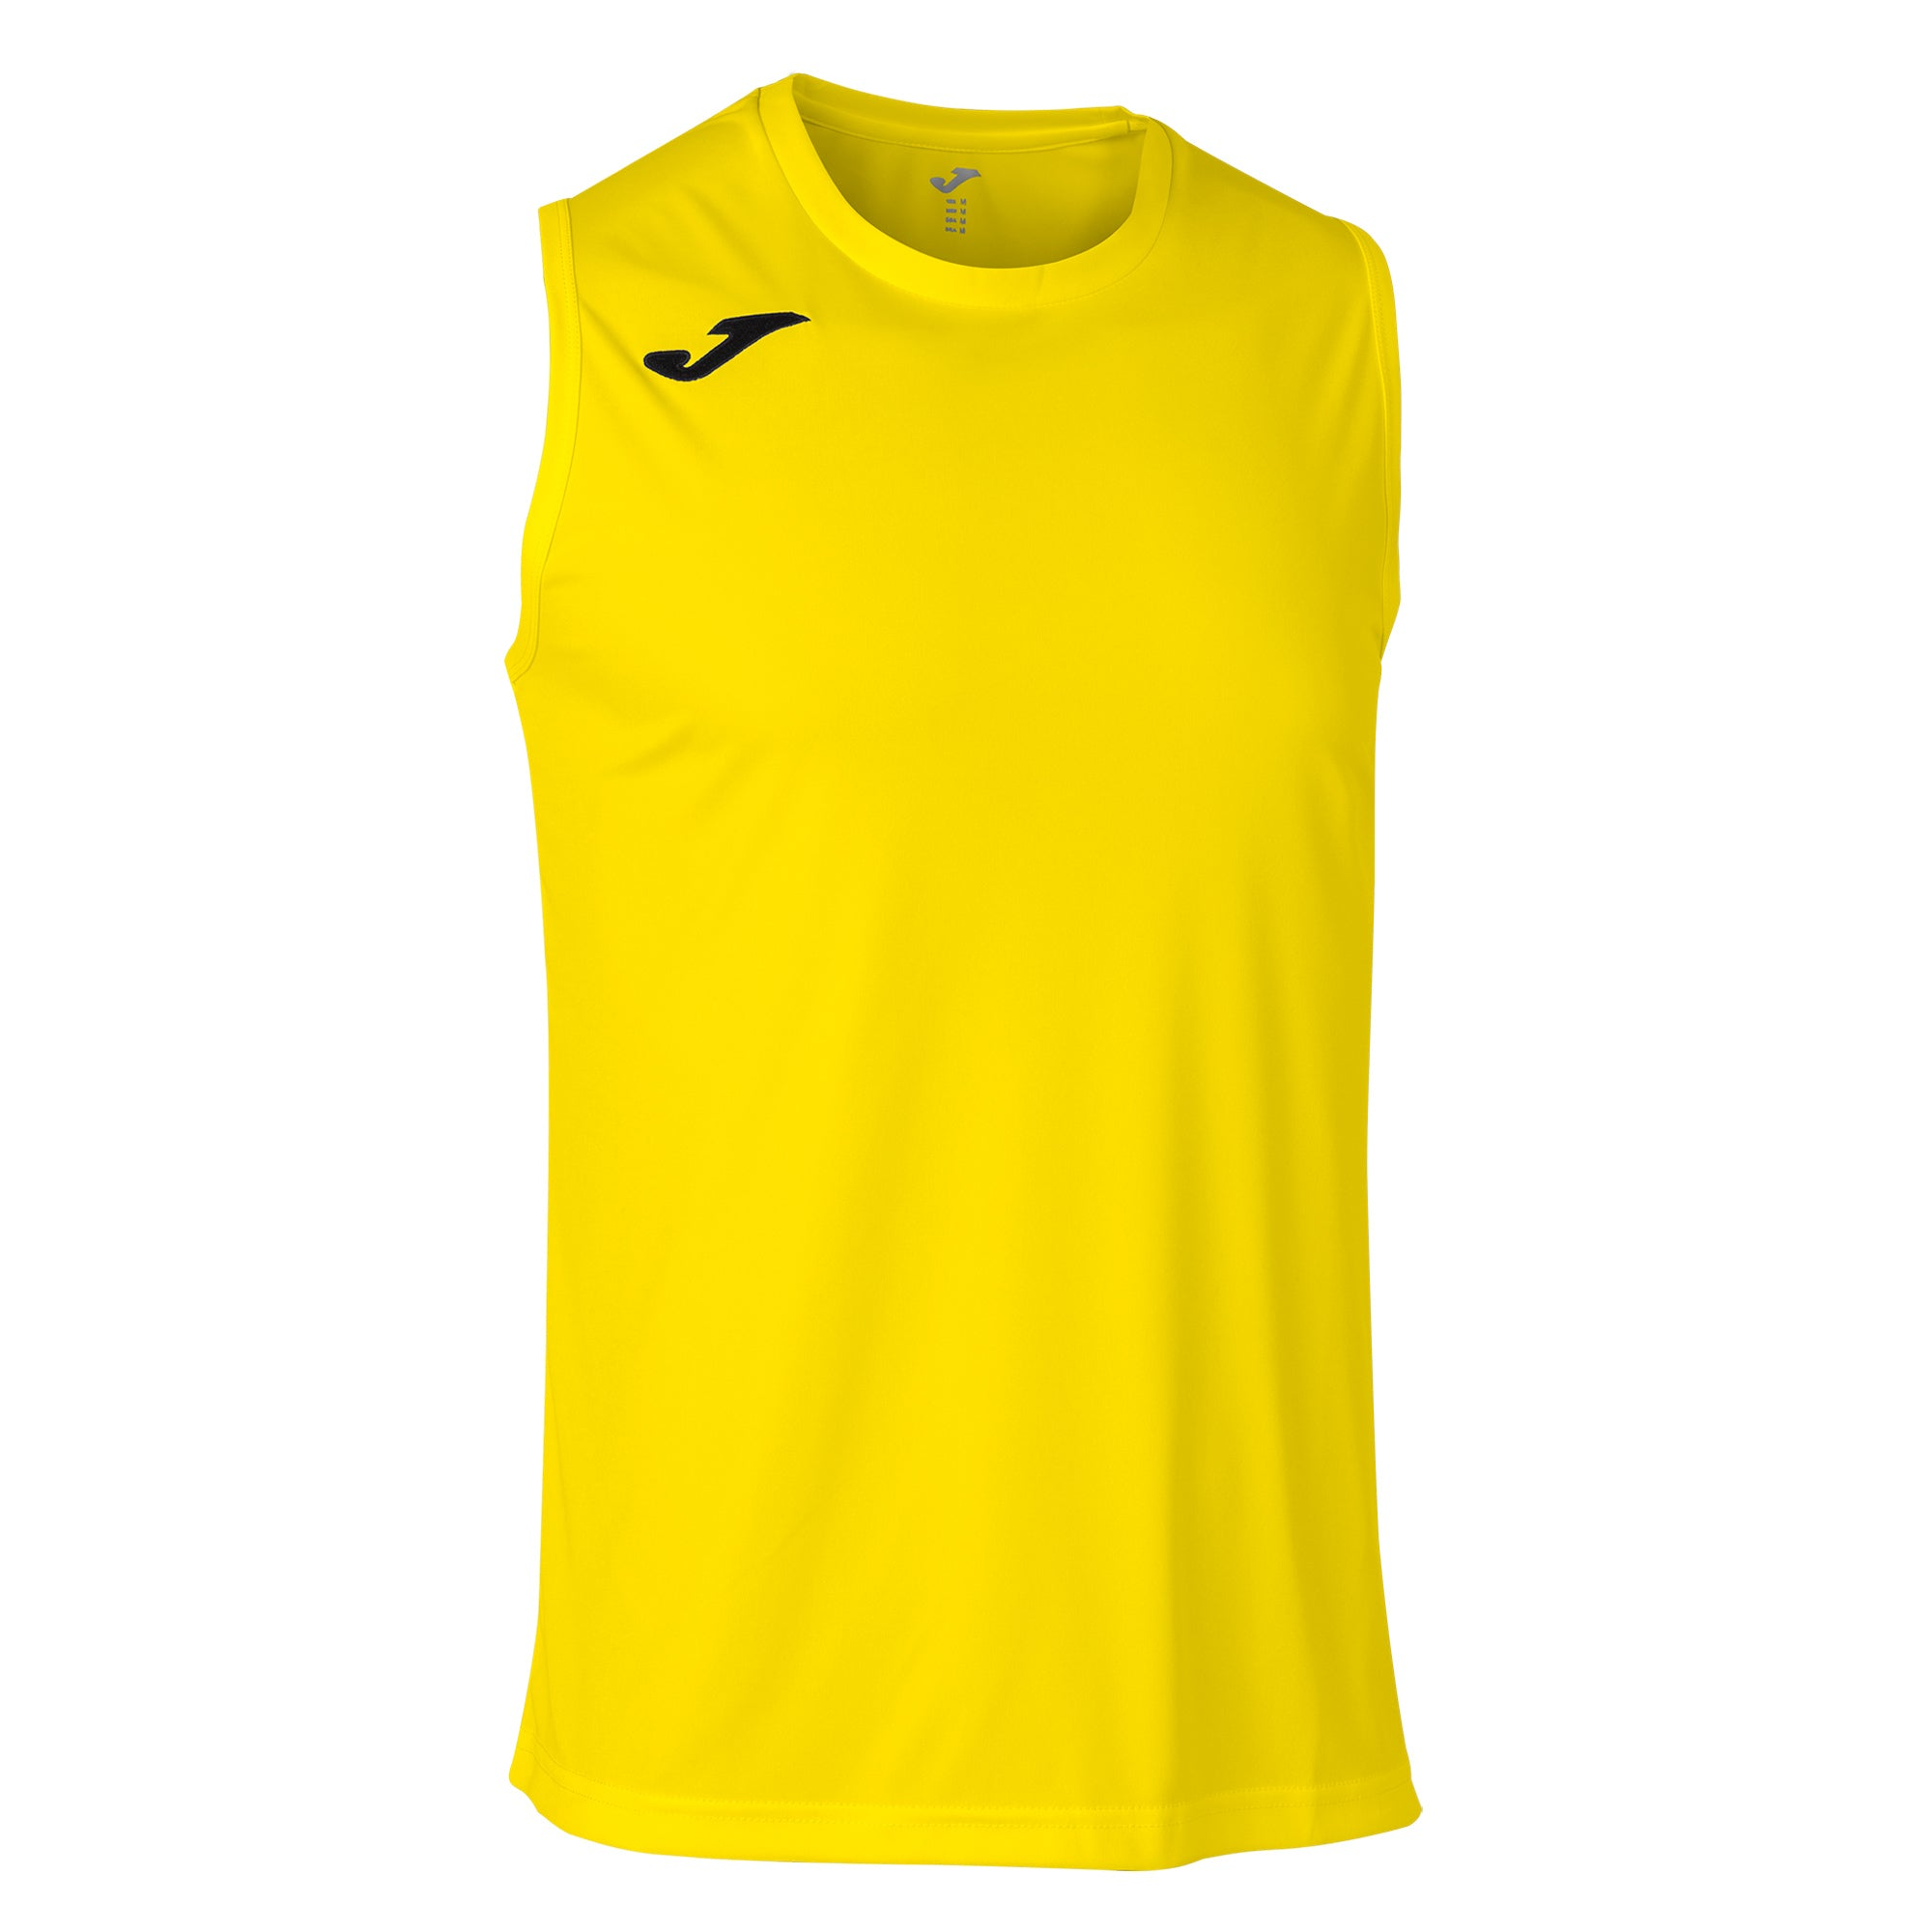 Teamwear - Joma Combi Sleeveless - Yellow - JO-101660-900